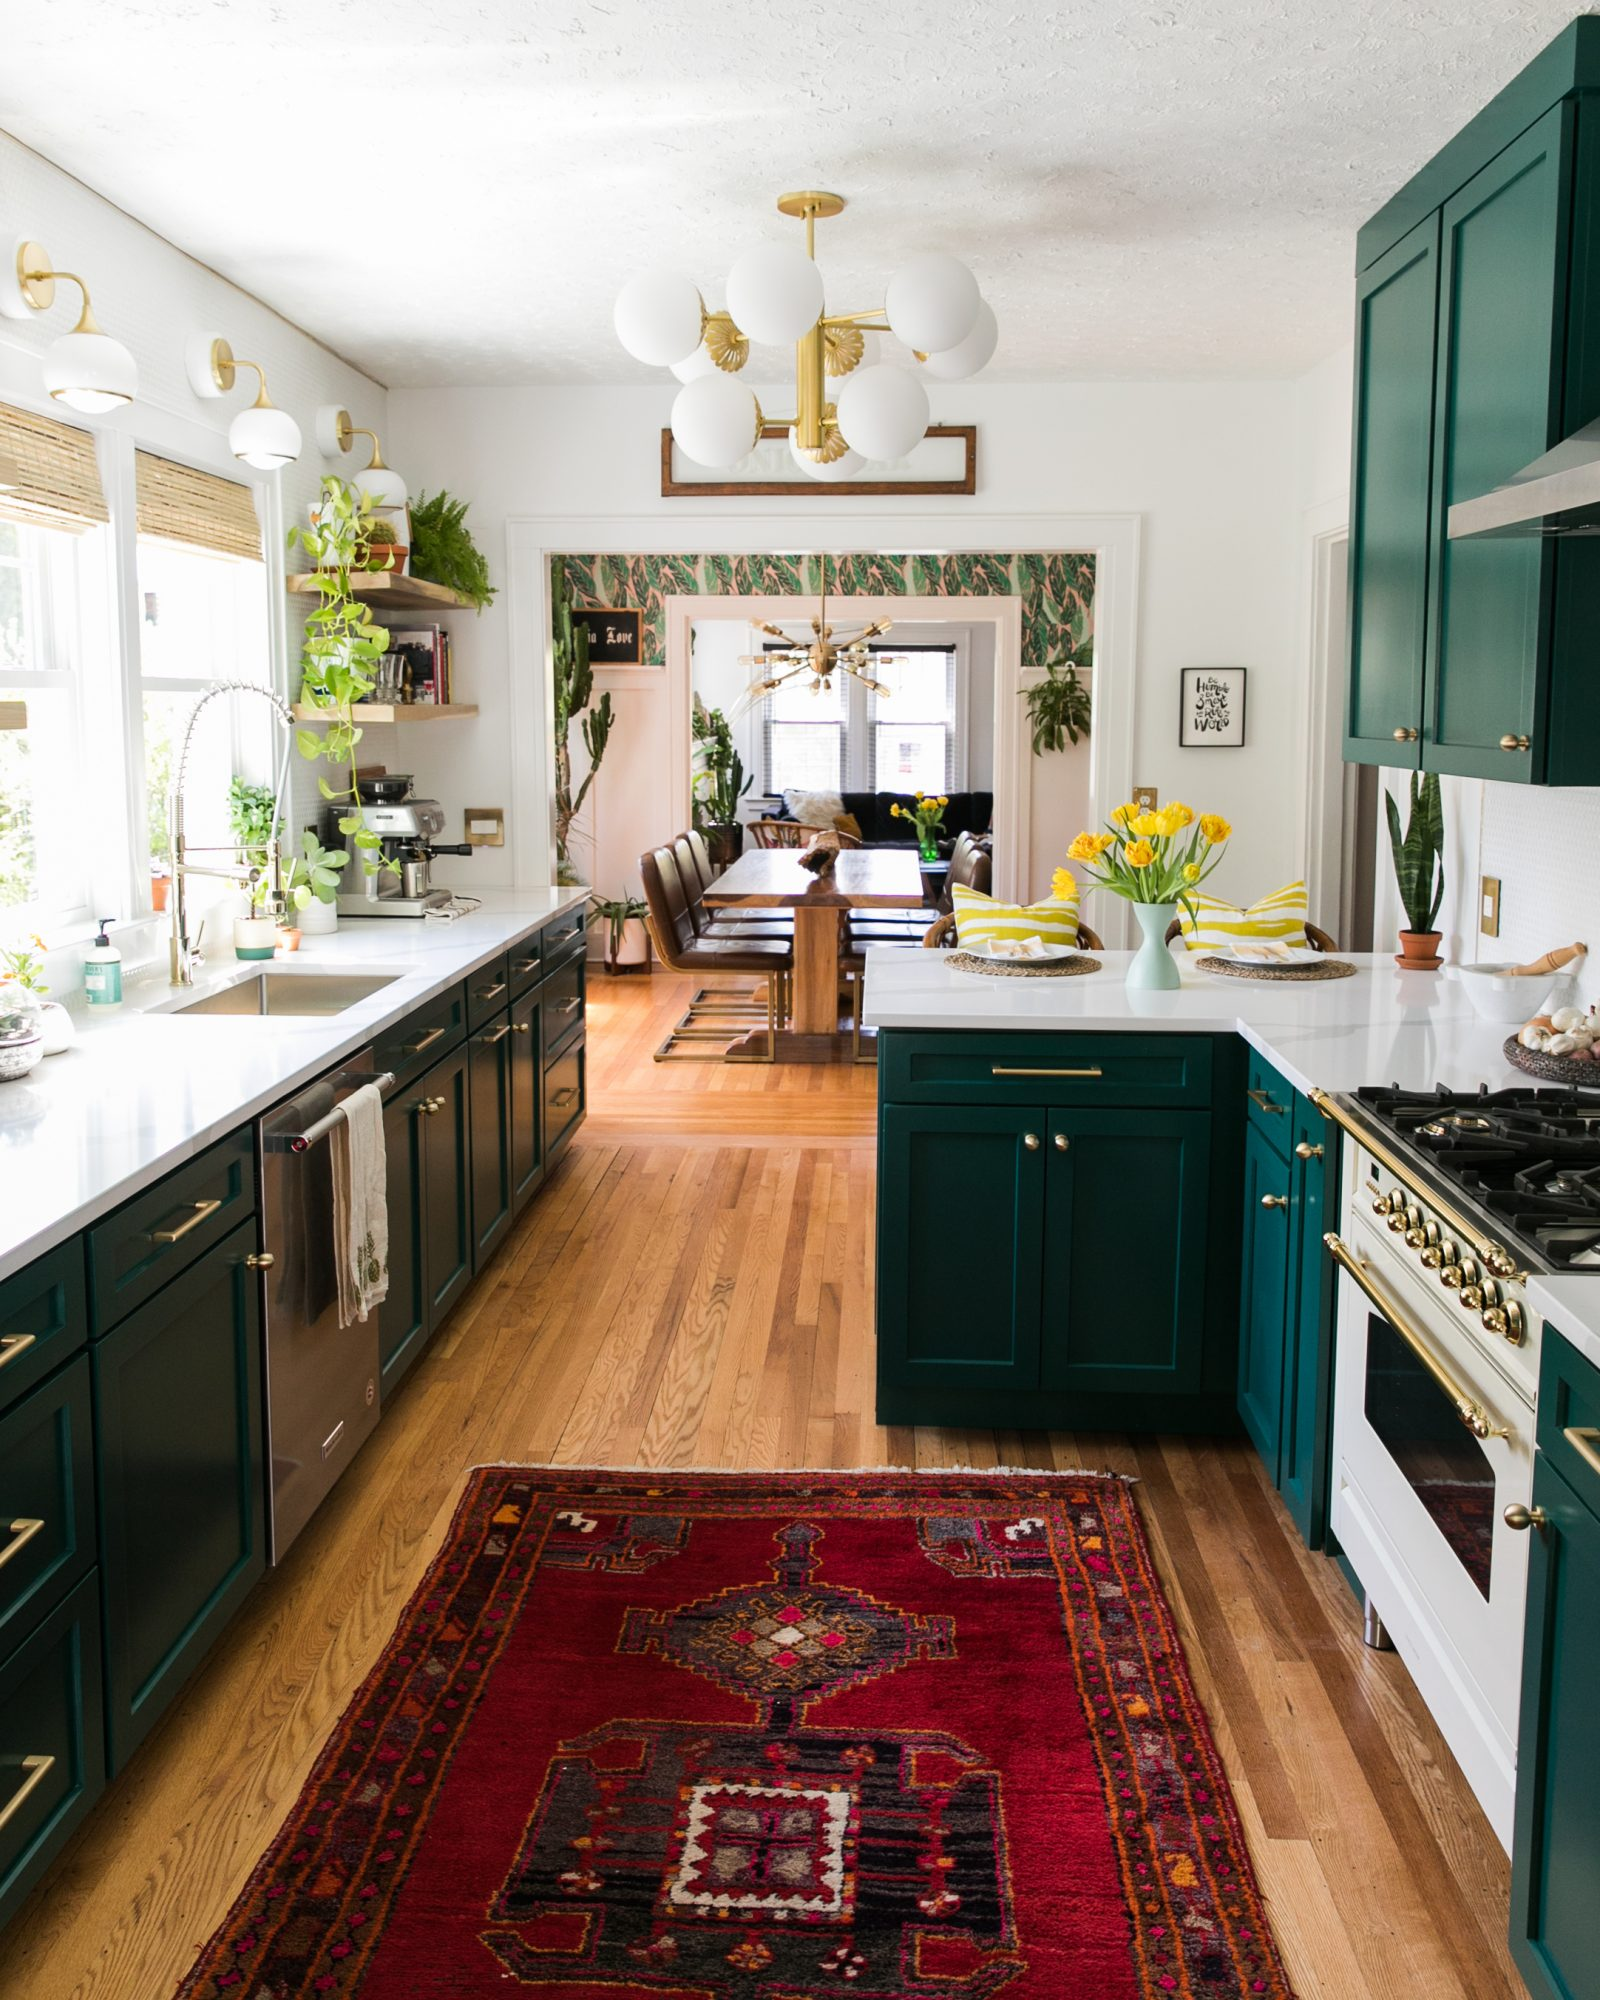 2020 Kitchen Design Trends with Staying Power | Better Homes ...